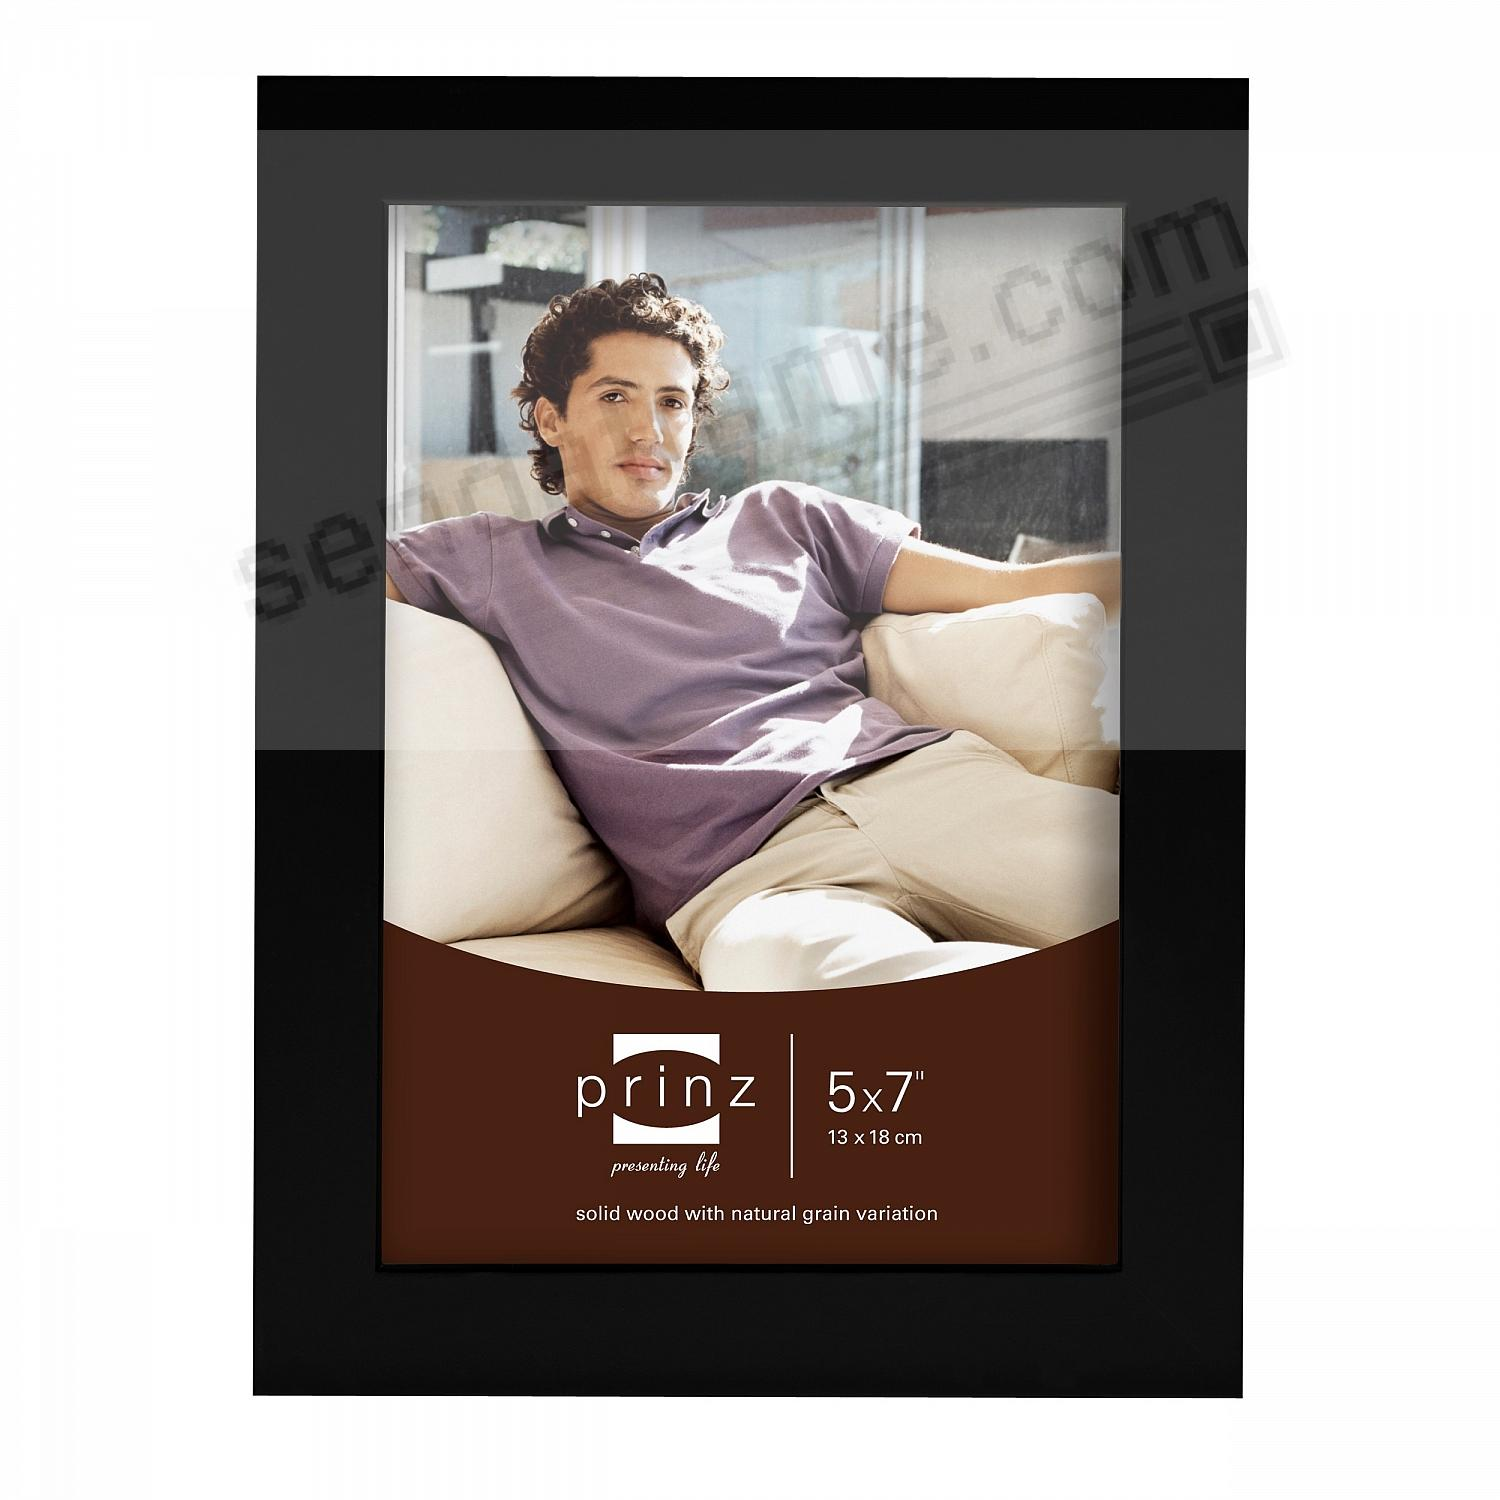 CAROLINA Black 5x7 frame from Prinz®